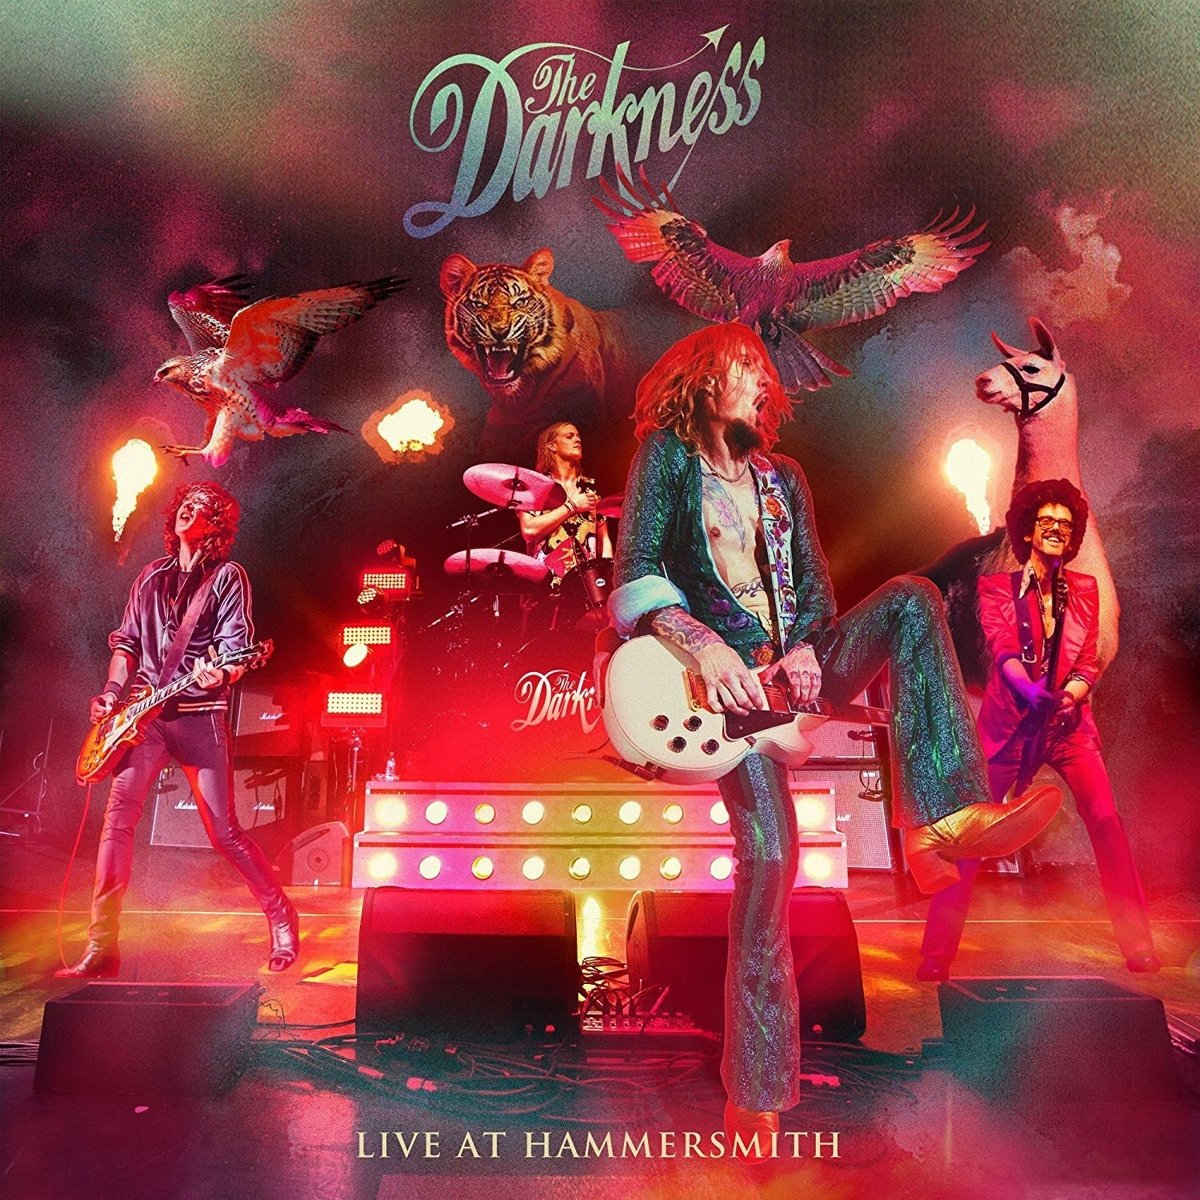 The Darkness – Live At Hammersmith (2018) [FLAC]